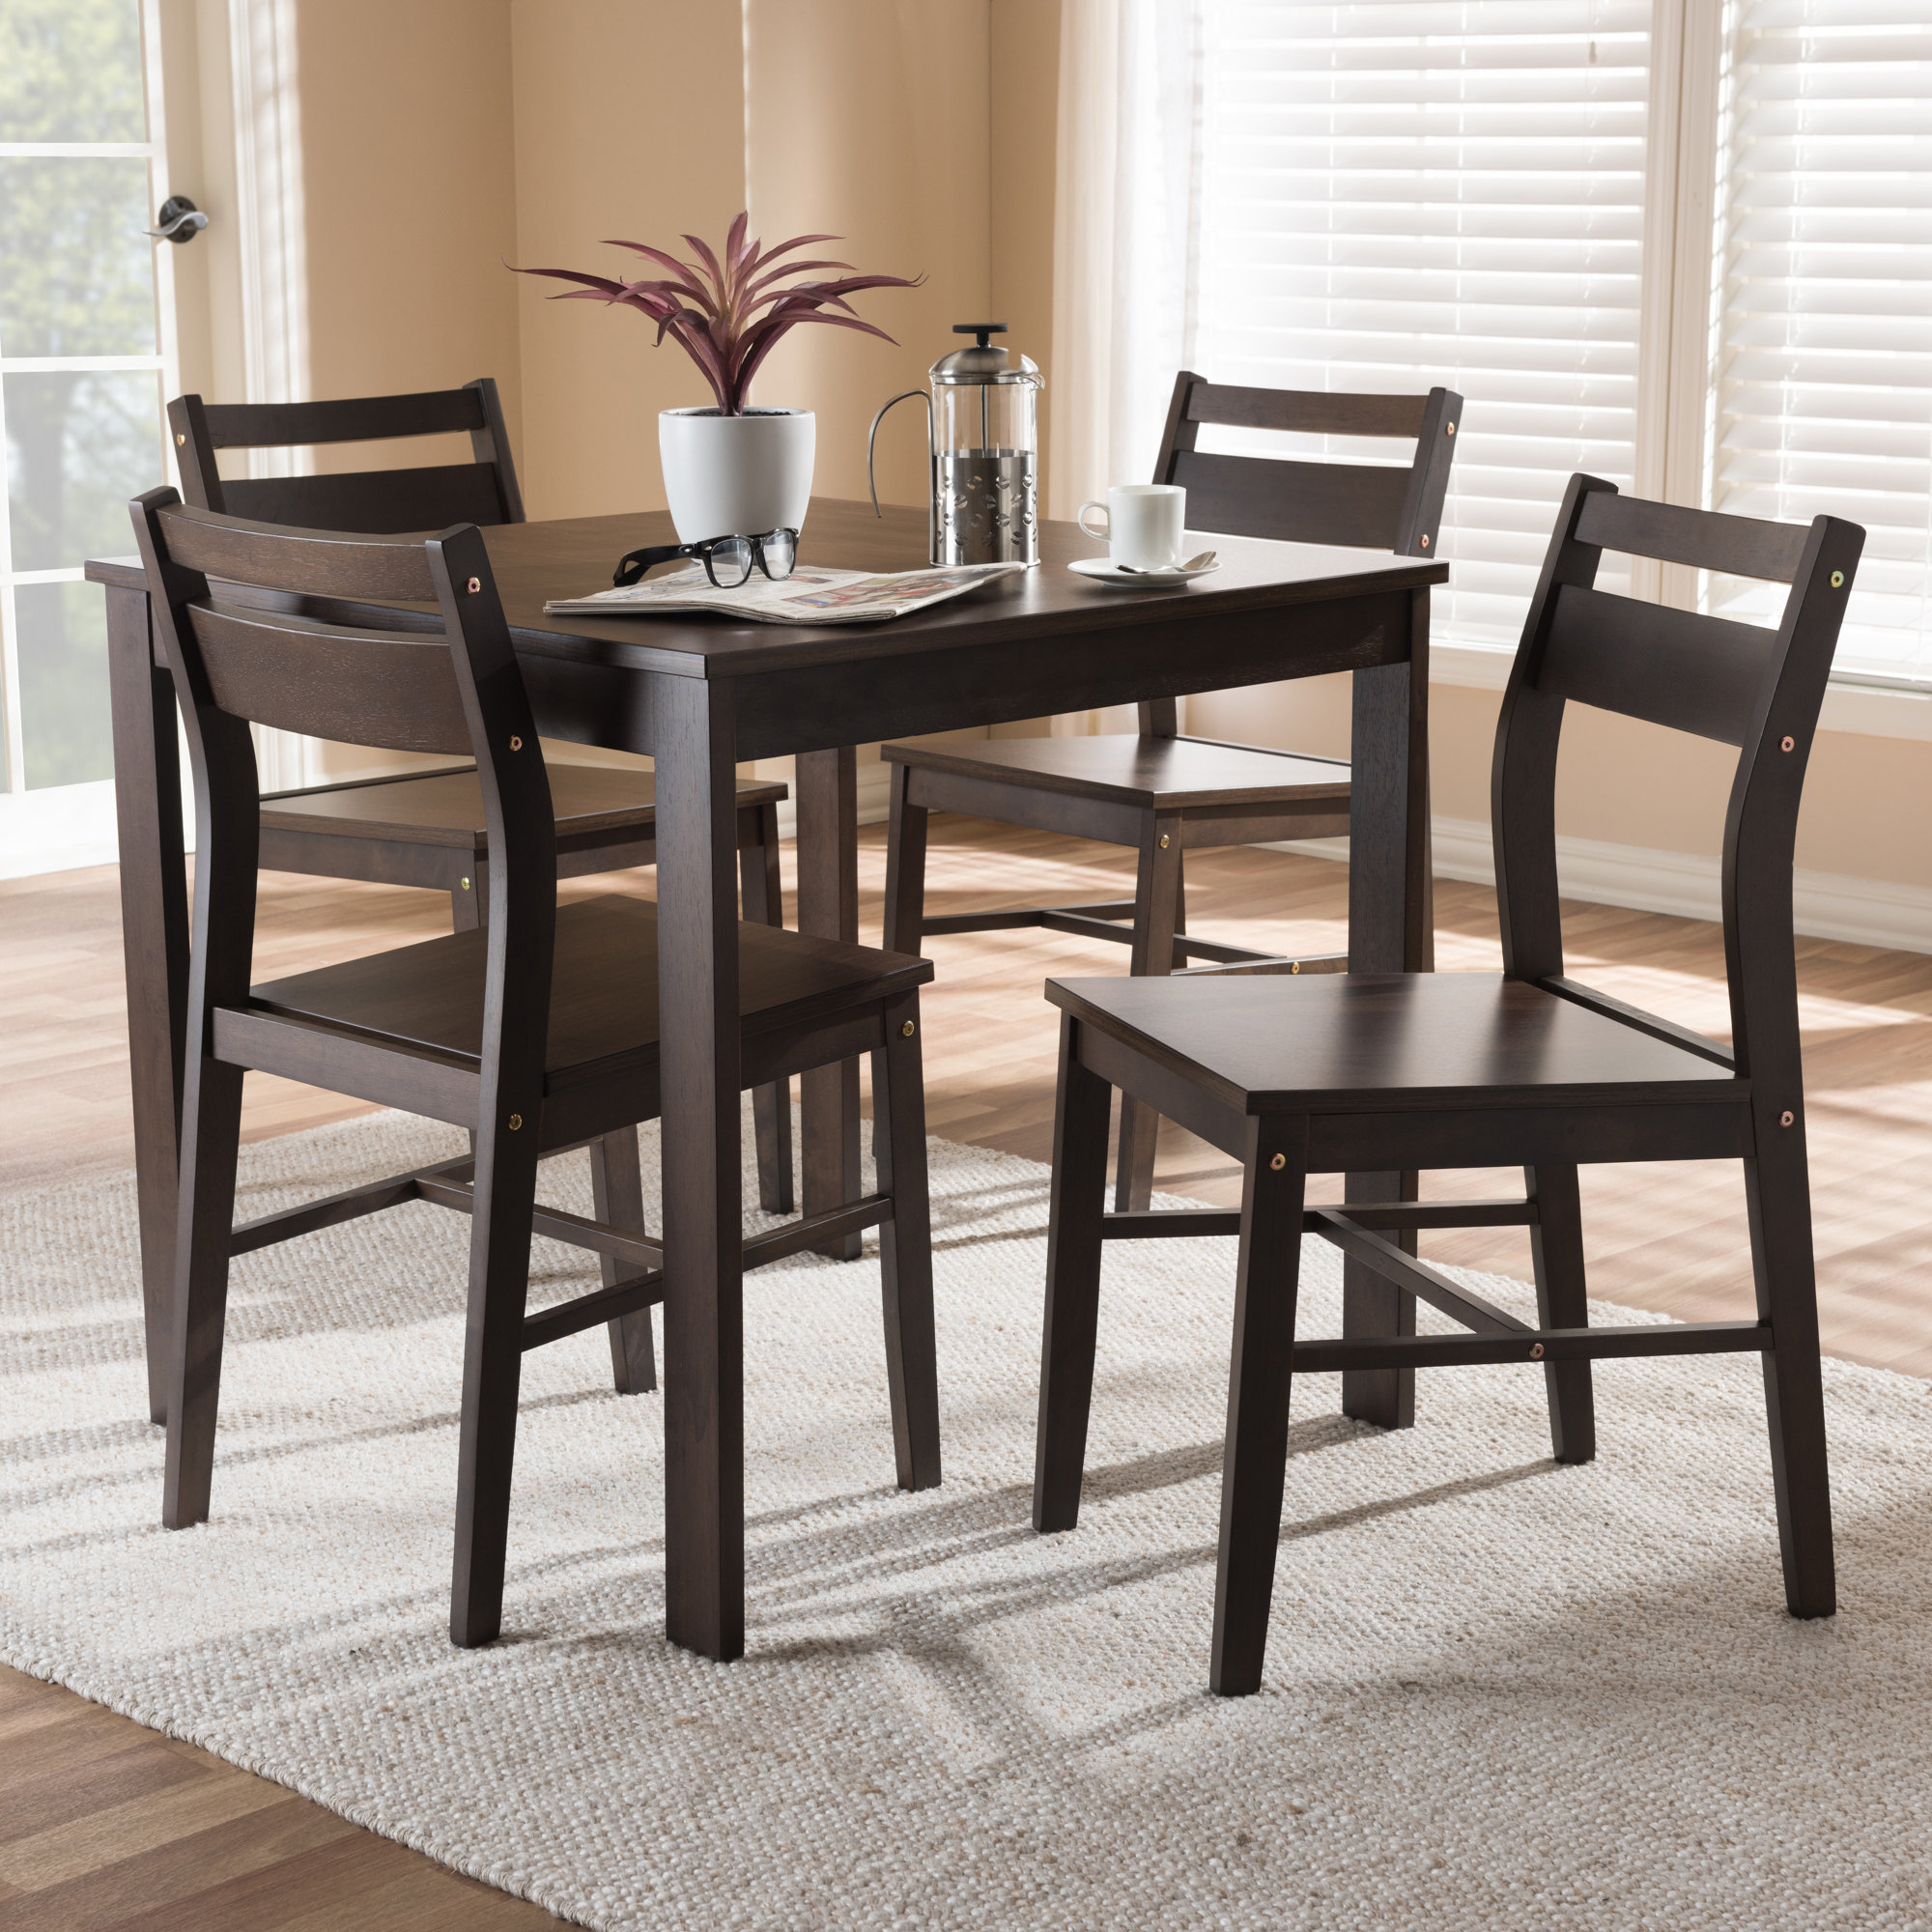 Inspiration about Taulbee 5 Piece Dining Sets Regarding Most Current Winston Porter Hersom 5 Piece Dining Set 192455631165 (#4 of 20)